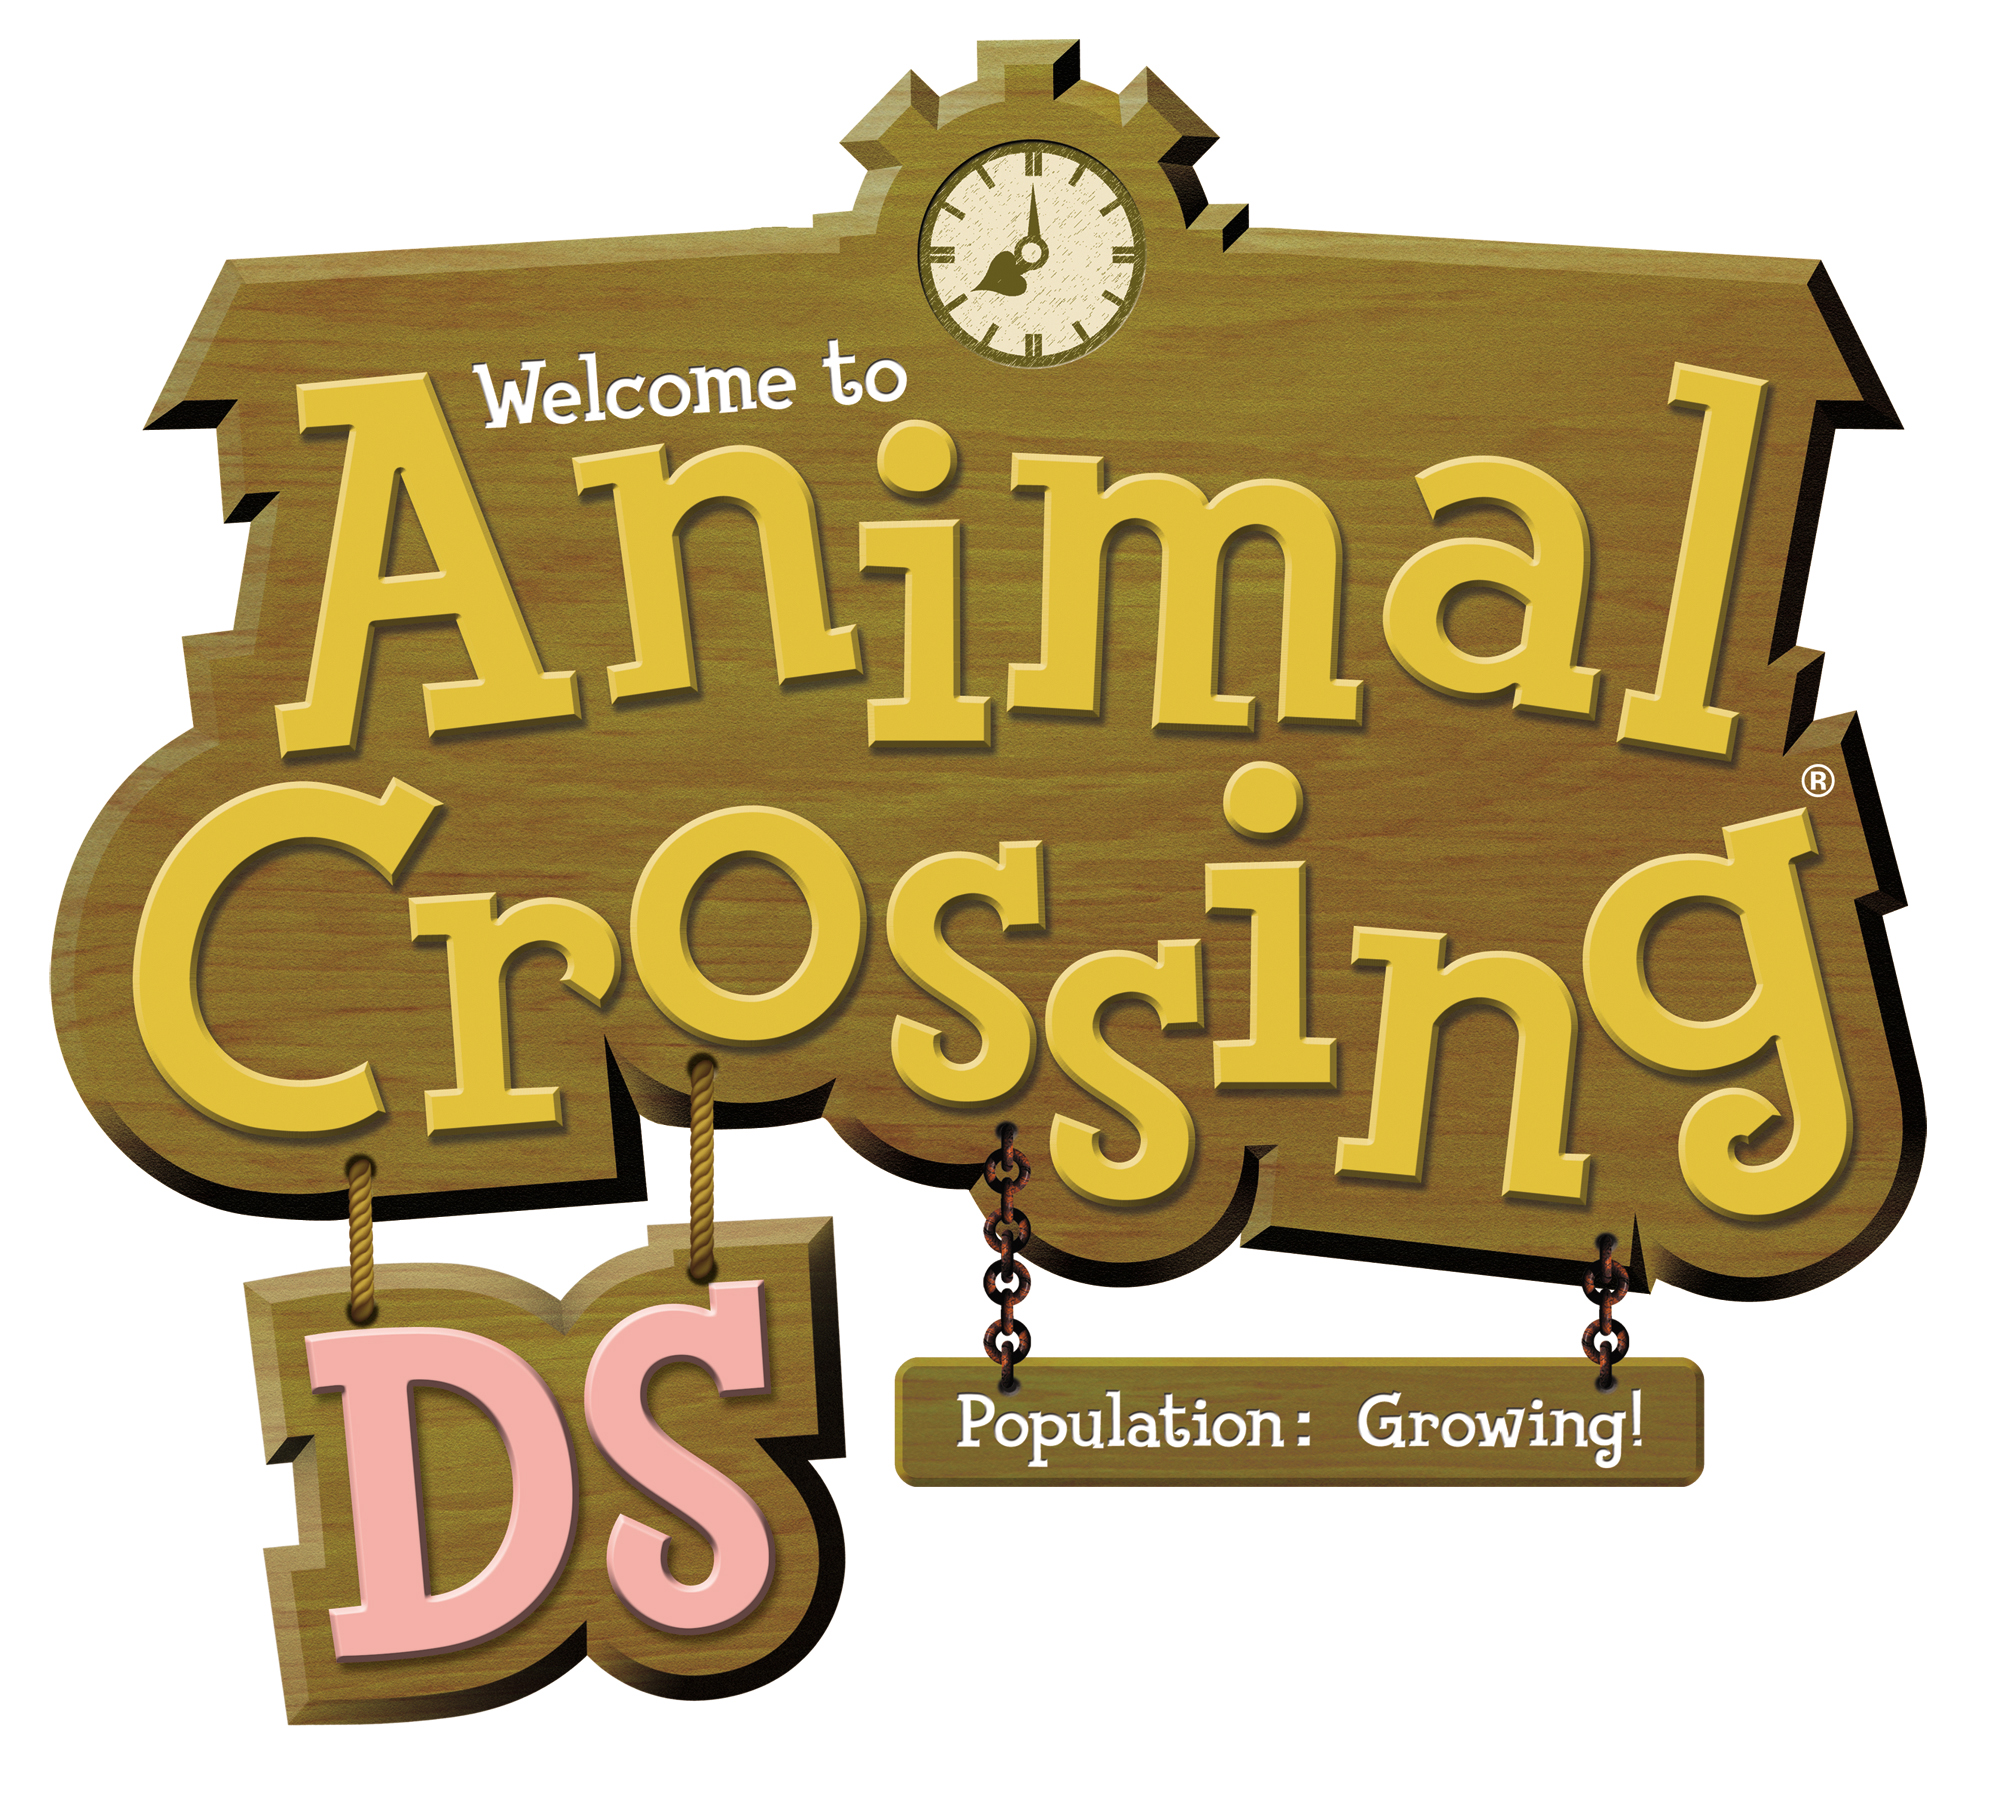 Nintendo drops the N-bomb in Animal Crossing